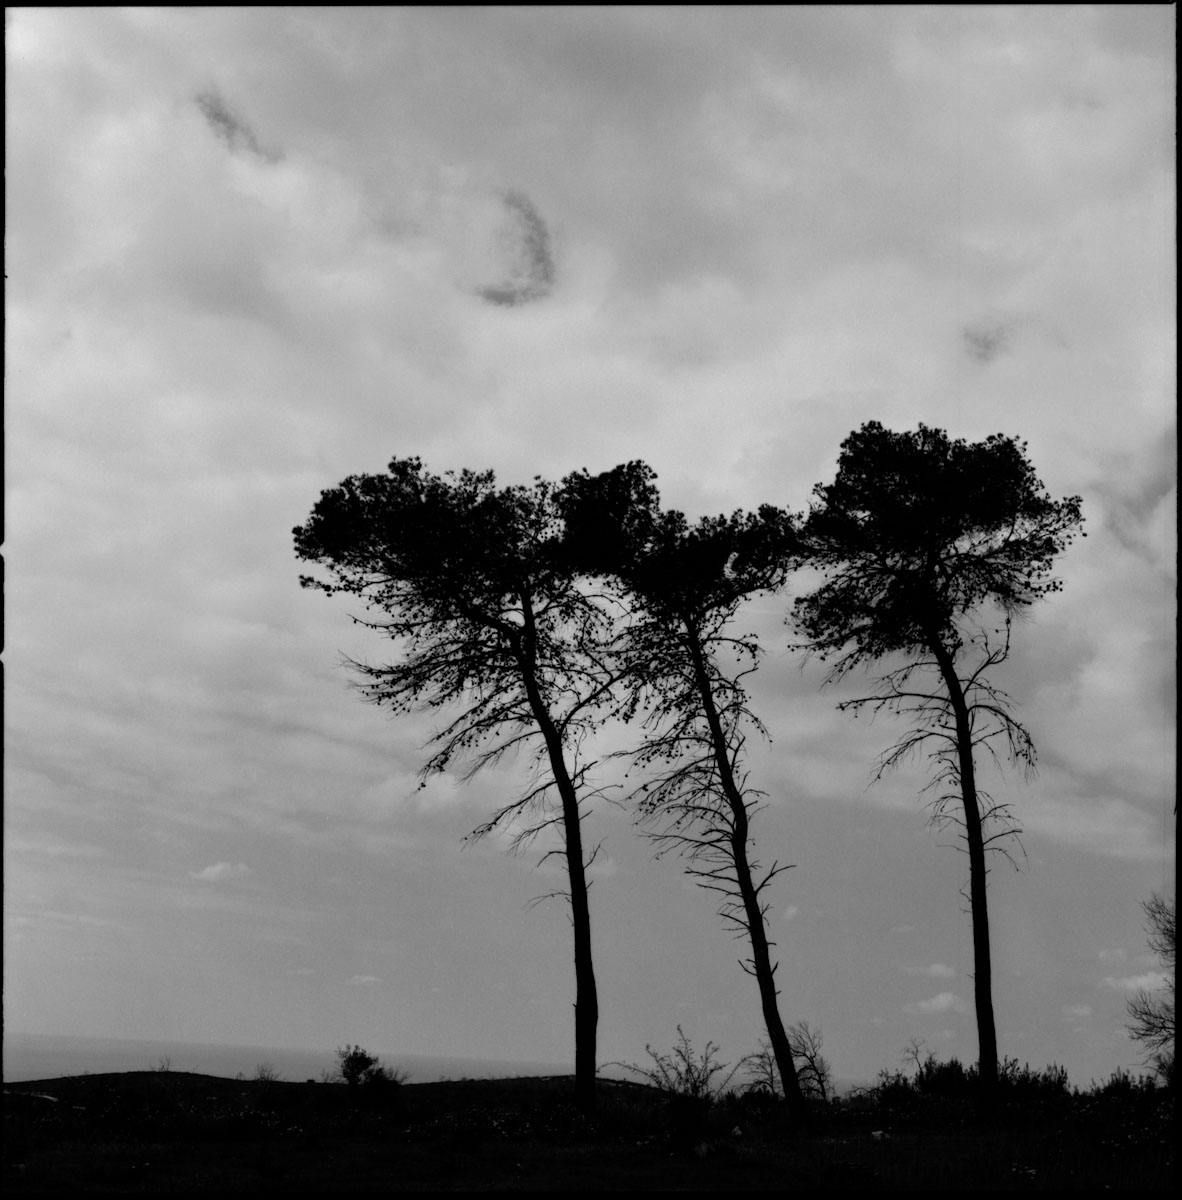 kodak-100tmx-dark_life_of_three_trees_victor_bezrukov.jpg